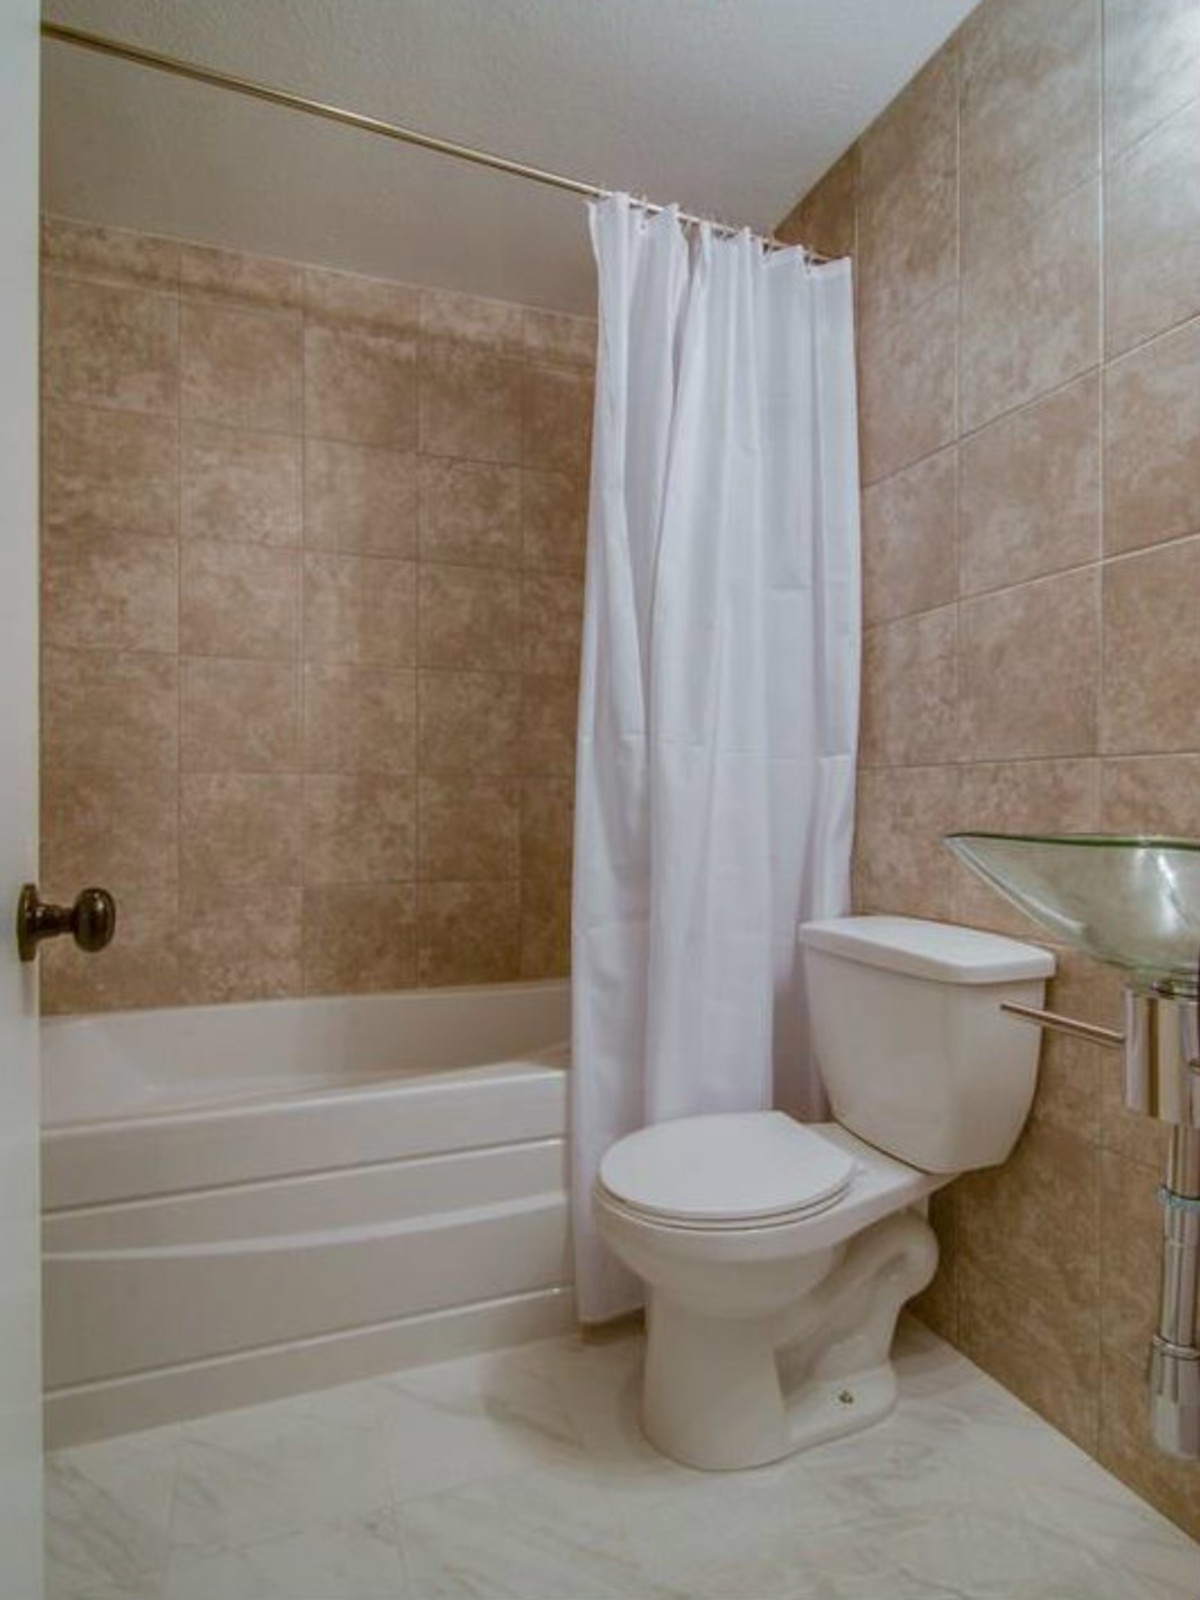 3065 Kinkaid Dr. bathroom in Dallas